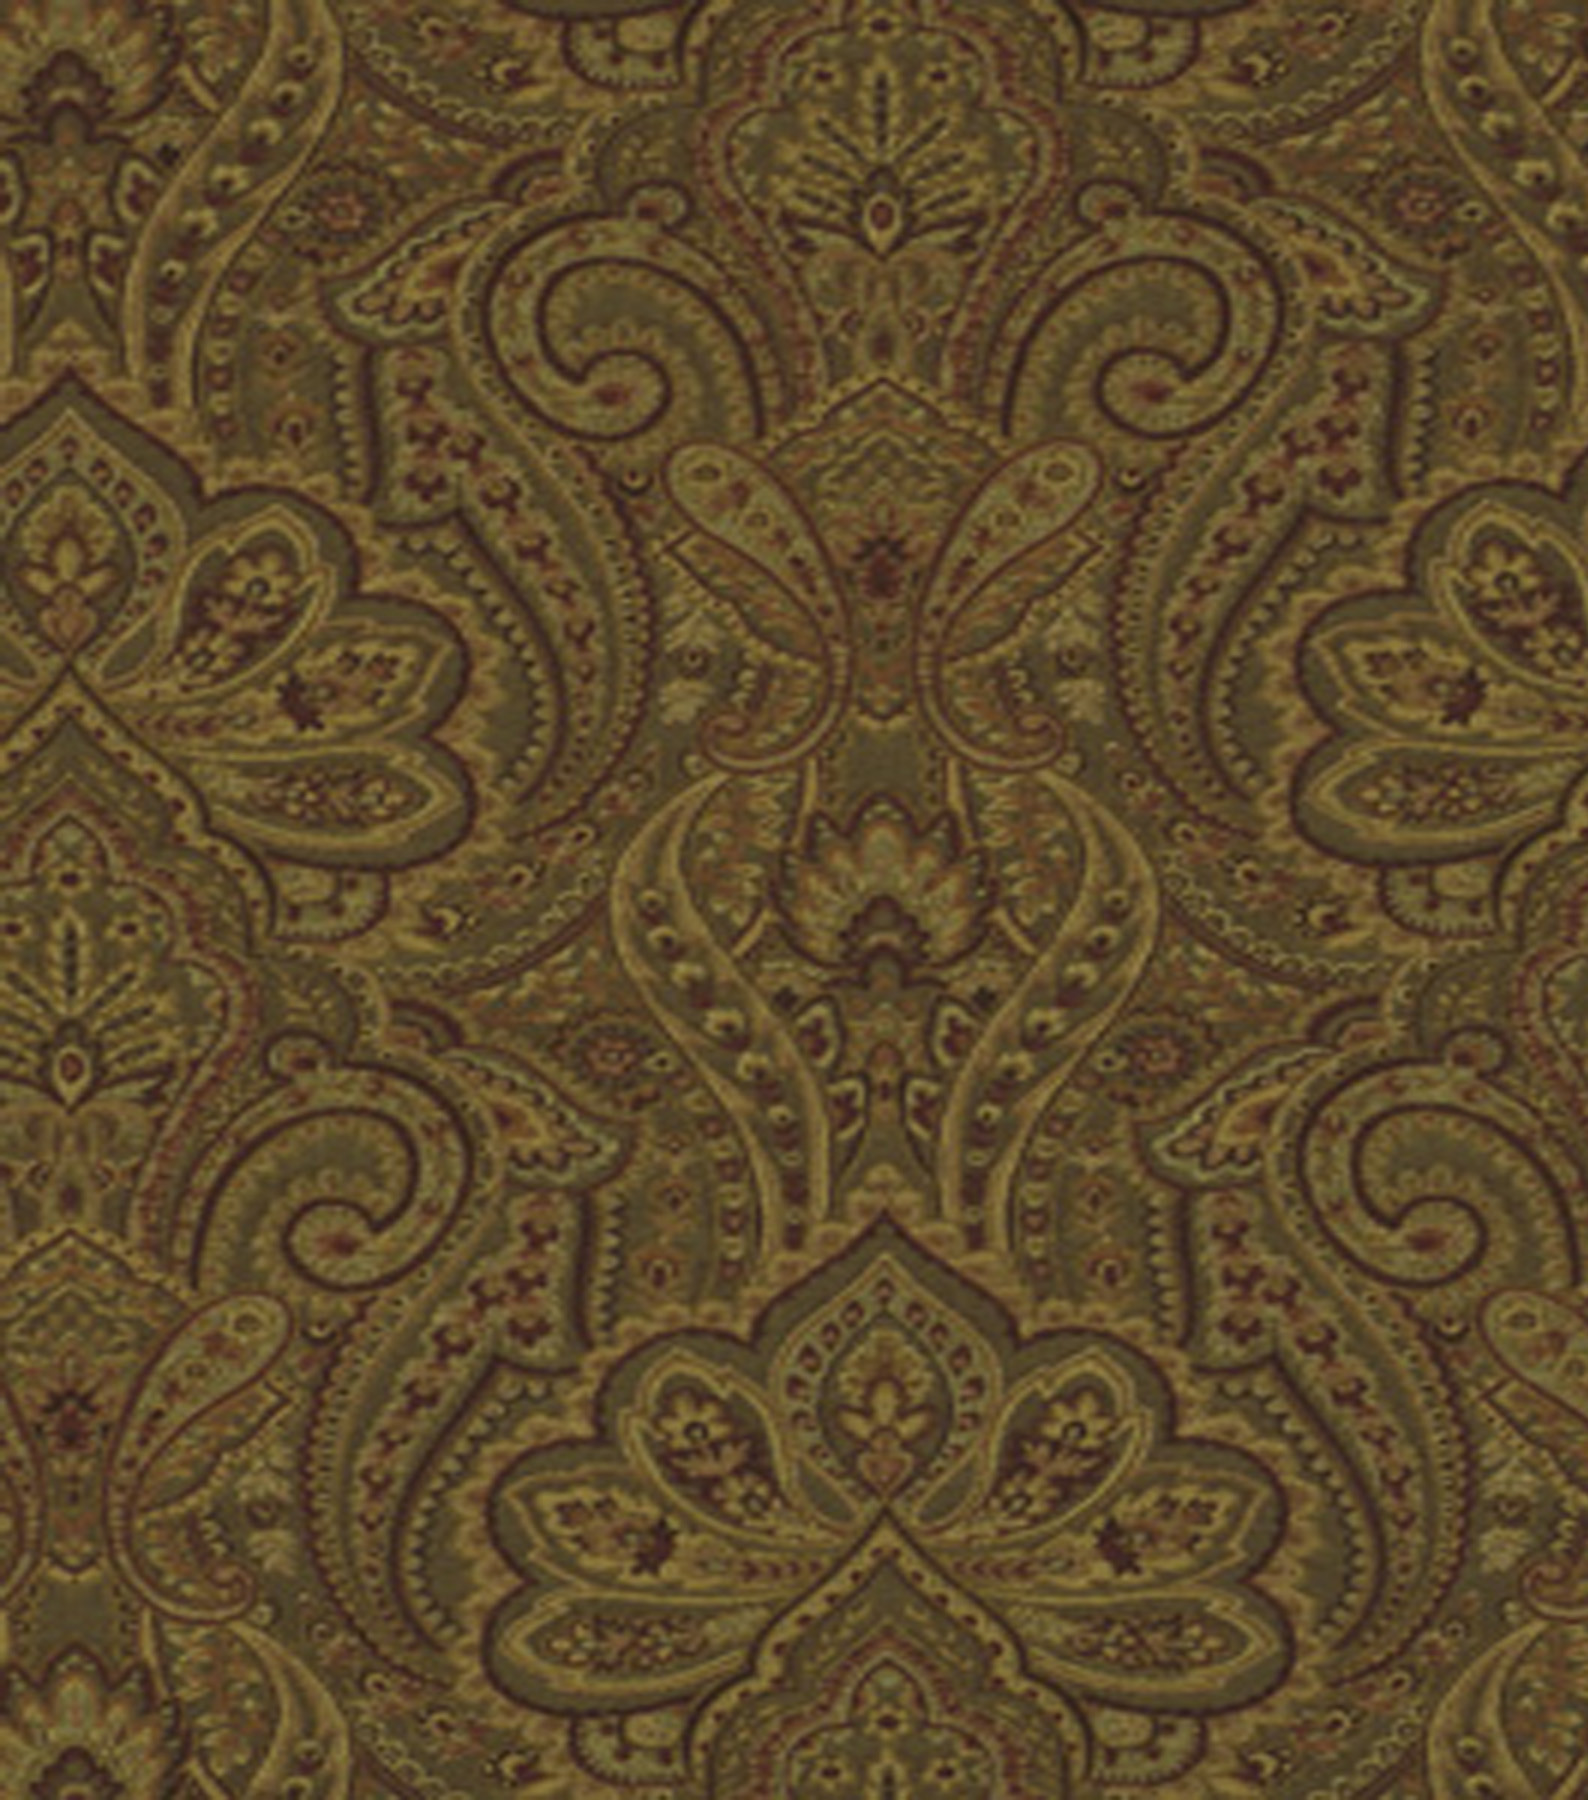 Home Decor 8\u0022x8\u0022 Fabric Swatch-Solid Fabric Robert Allen Edwardian Spice